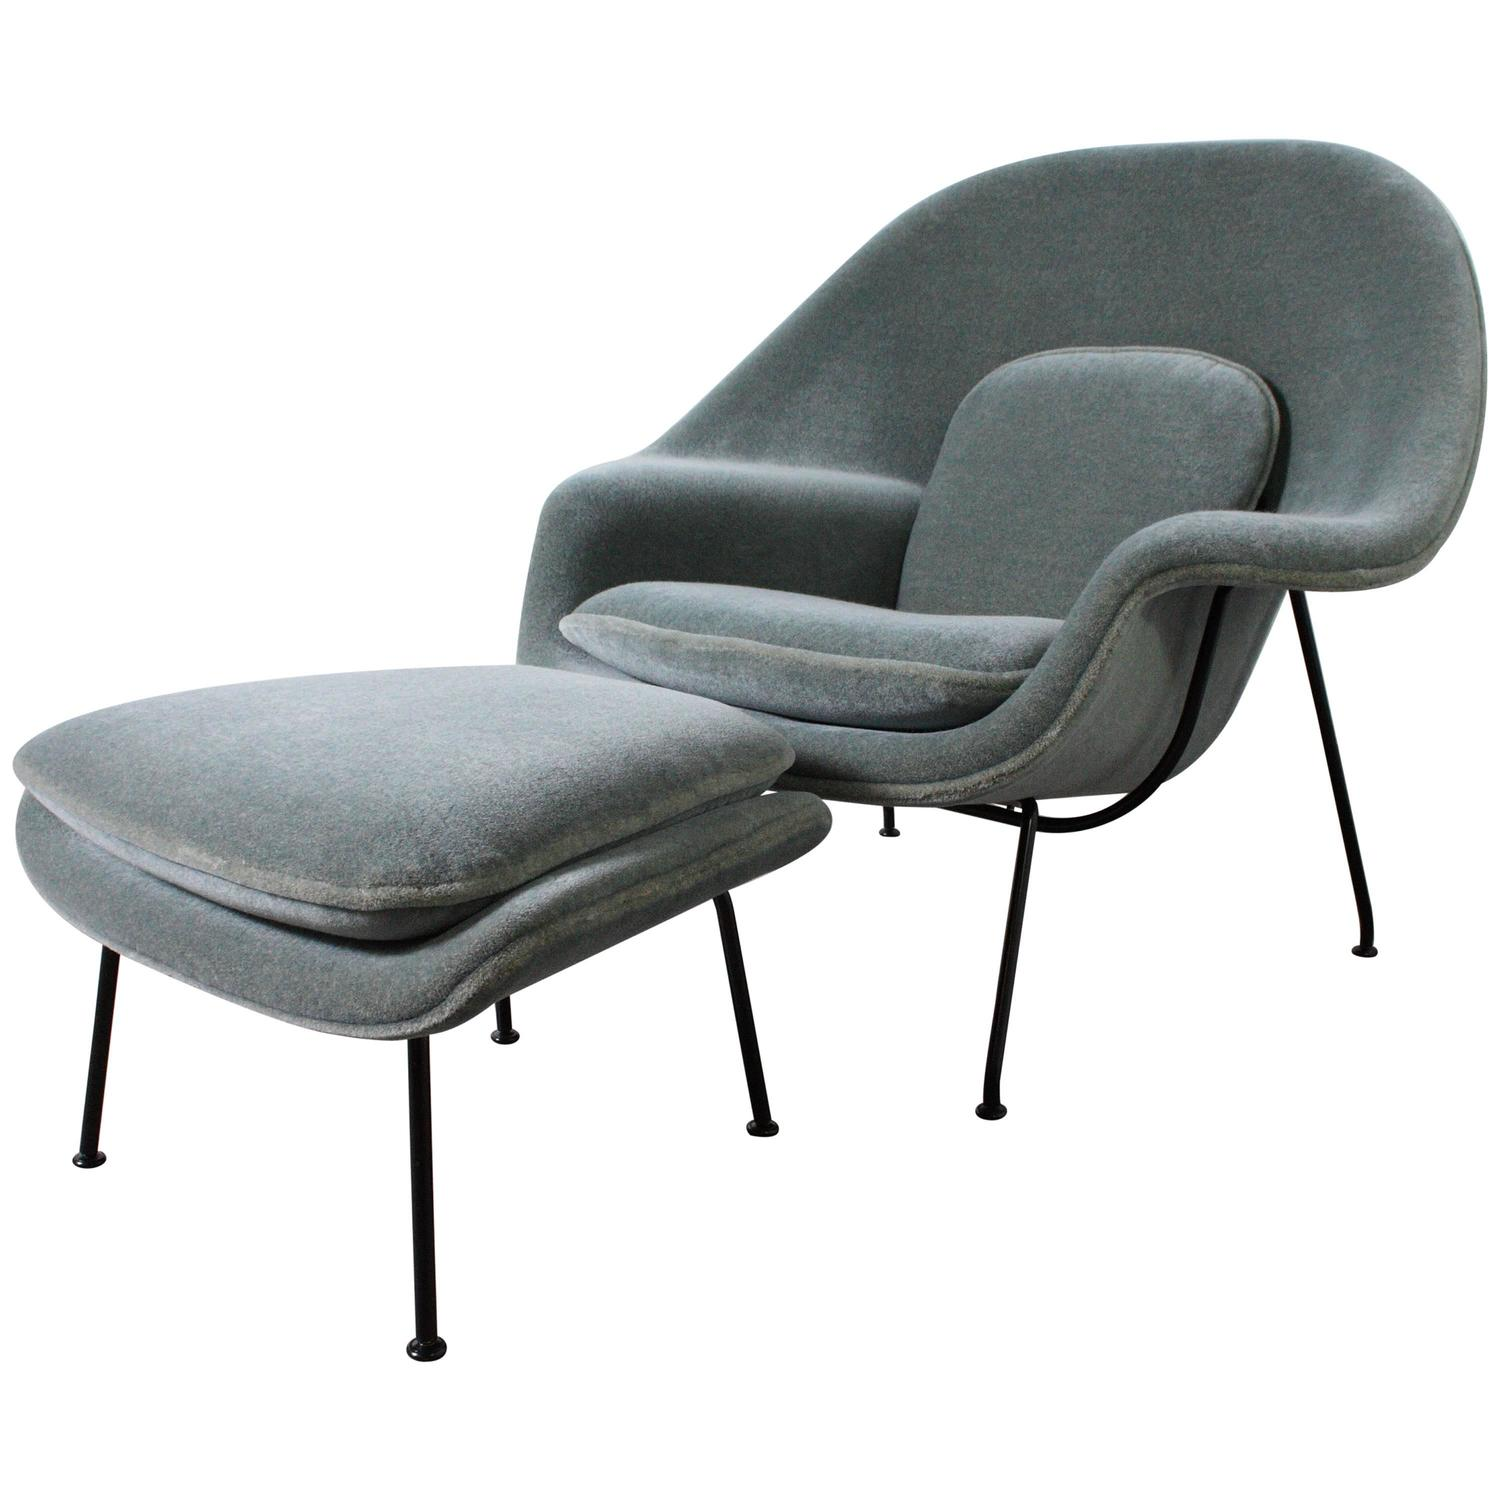 Womb Lounge Chair womb chaireero saarinen for knoll upholstered in grade i knoll